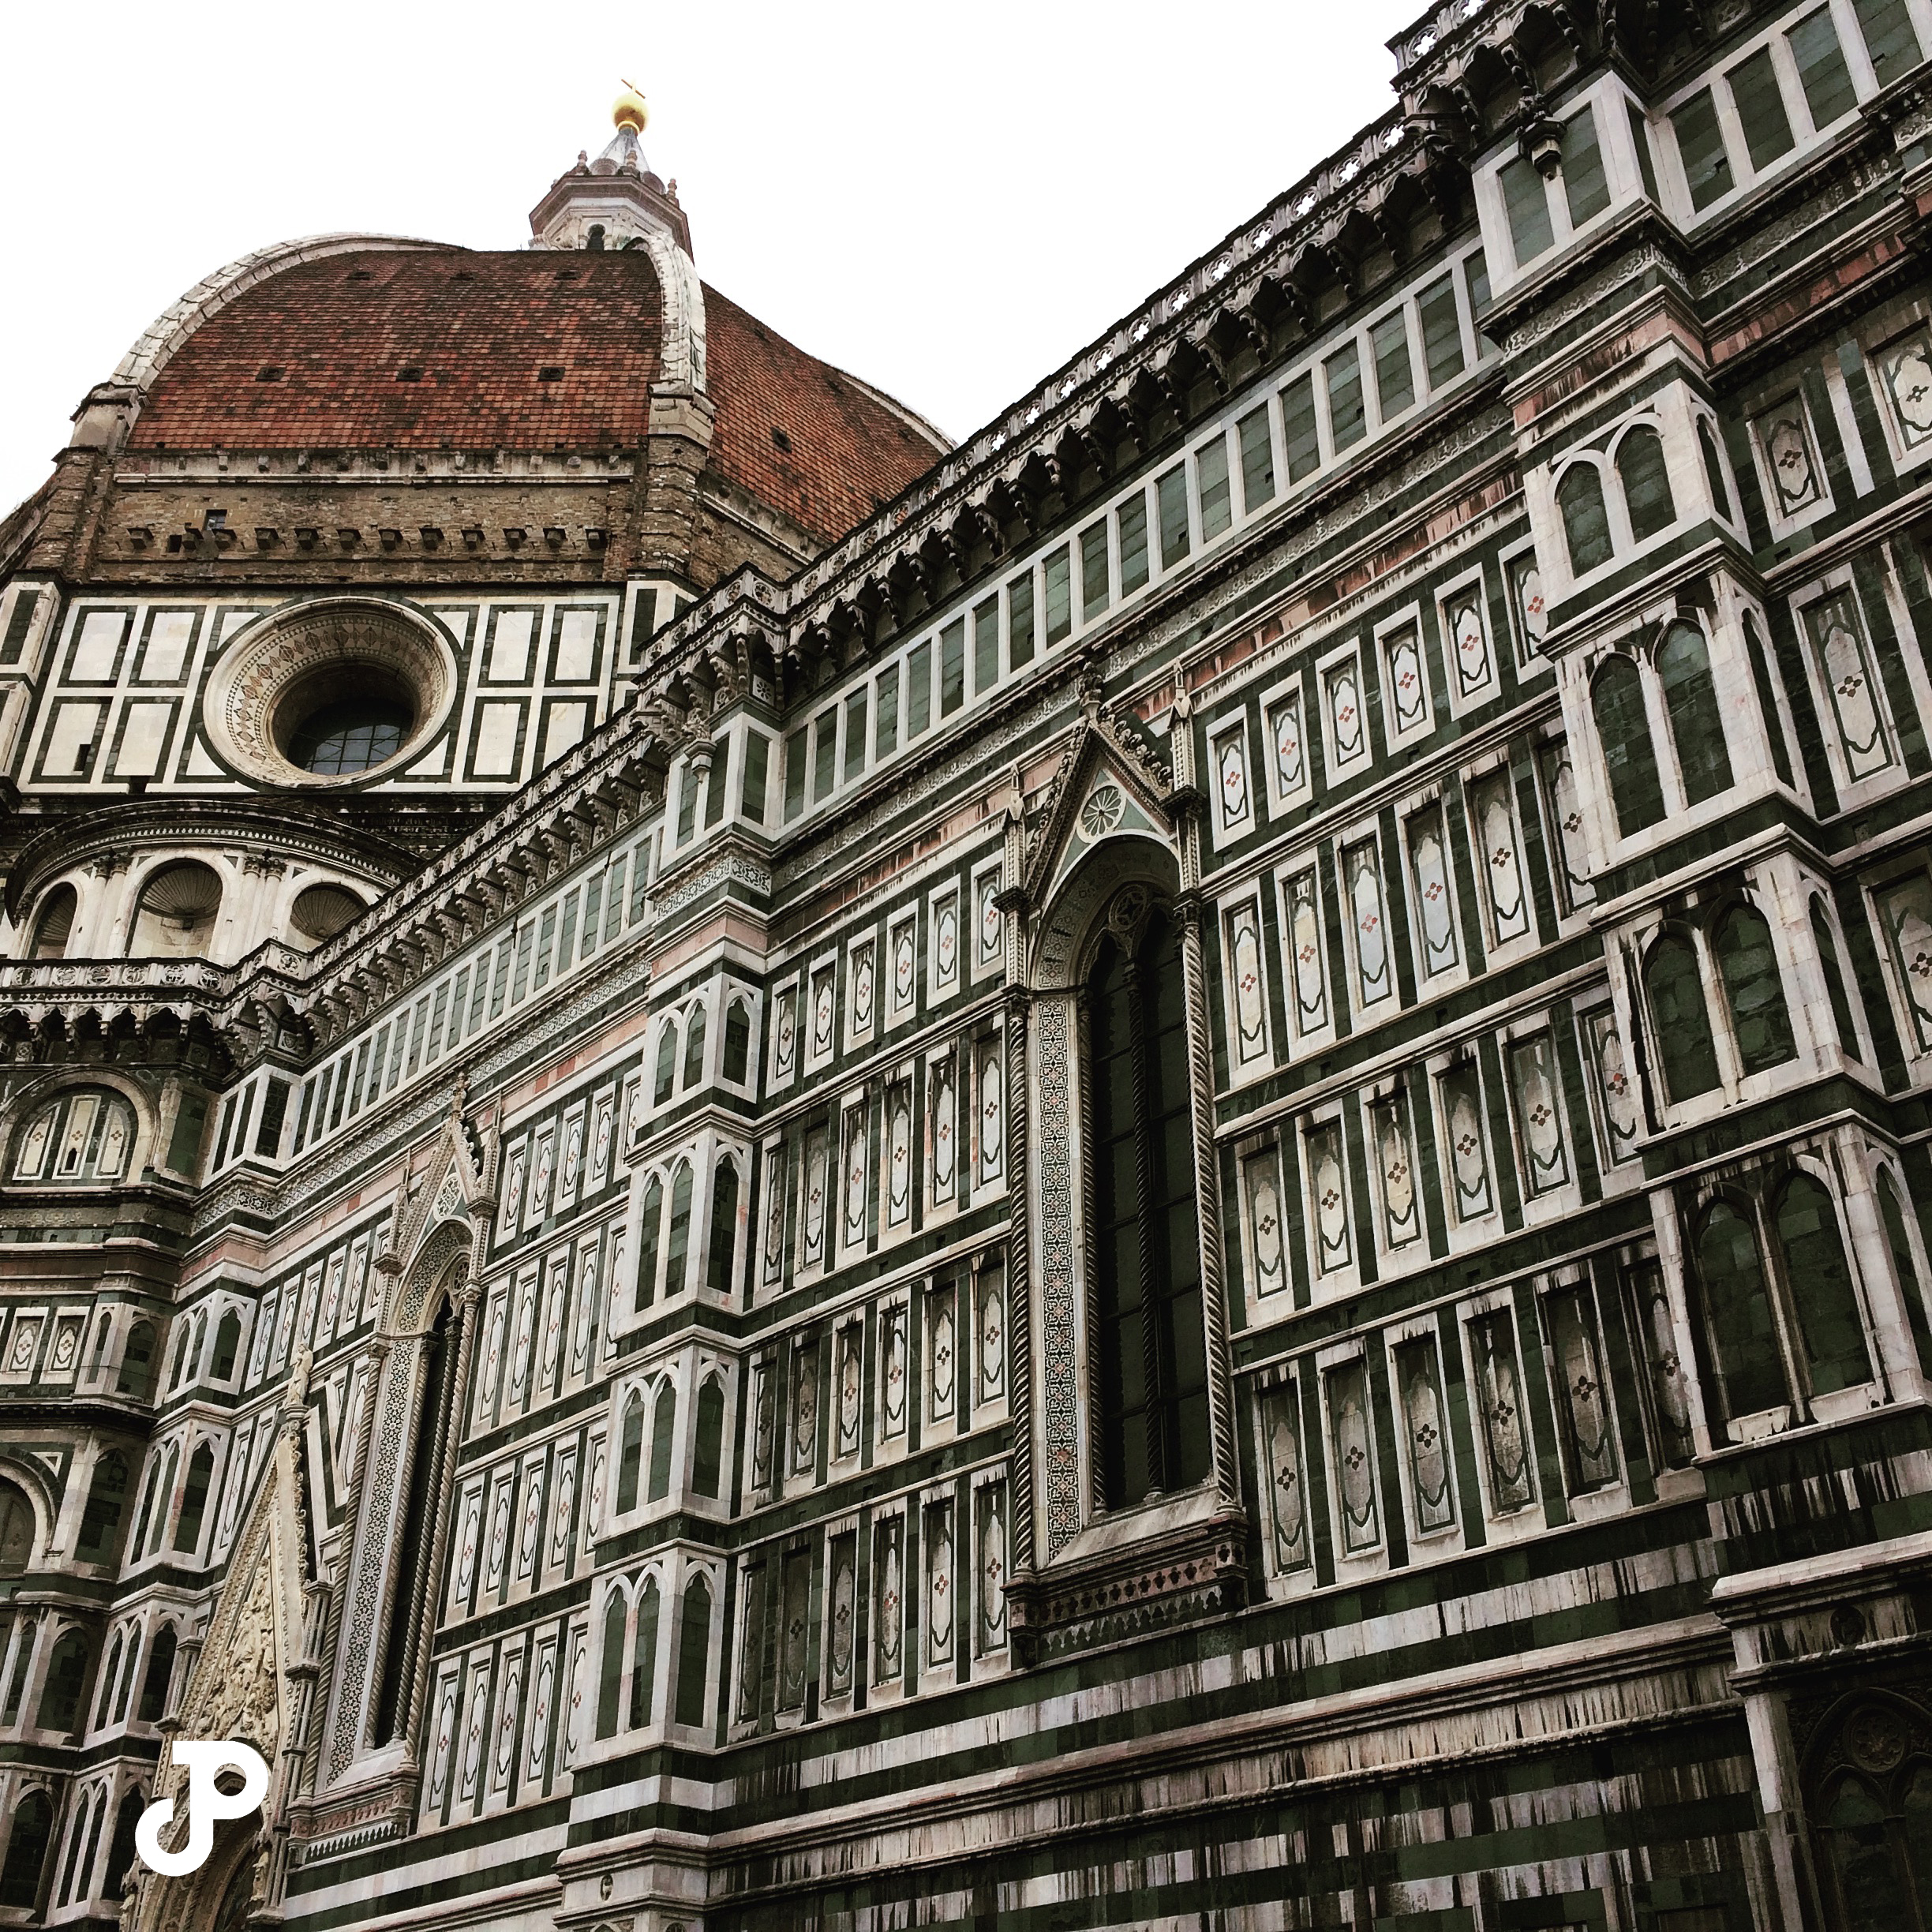 a close-up view of the Duomo in Florence